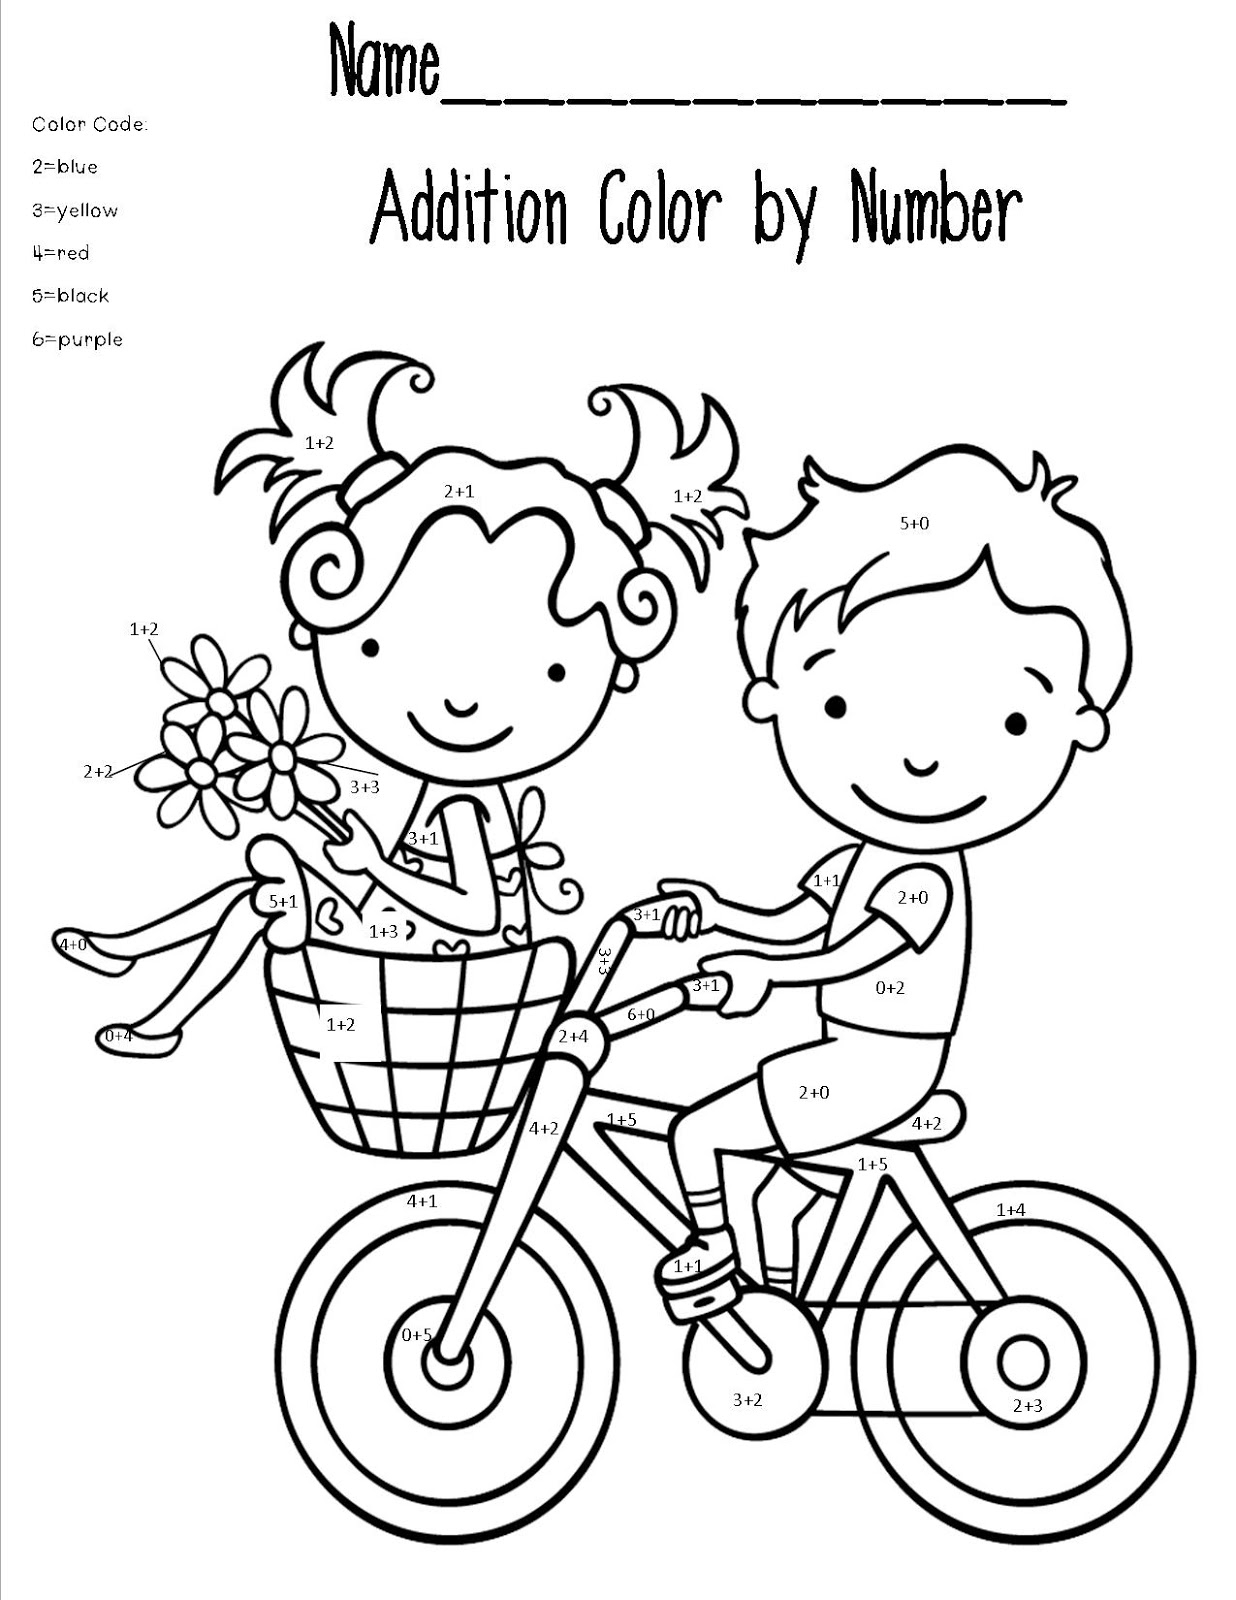 coloring sheet math math coloring pages best coloring pages for kids sheet math coloring